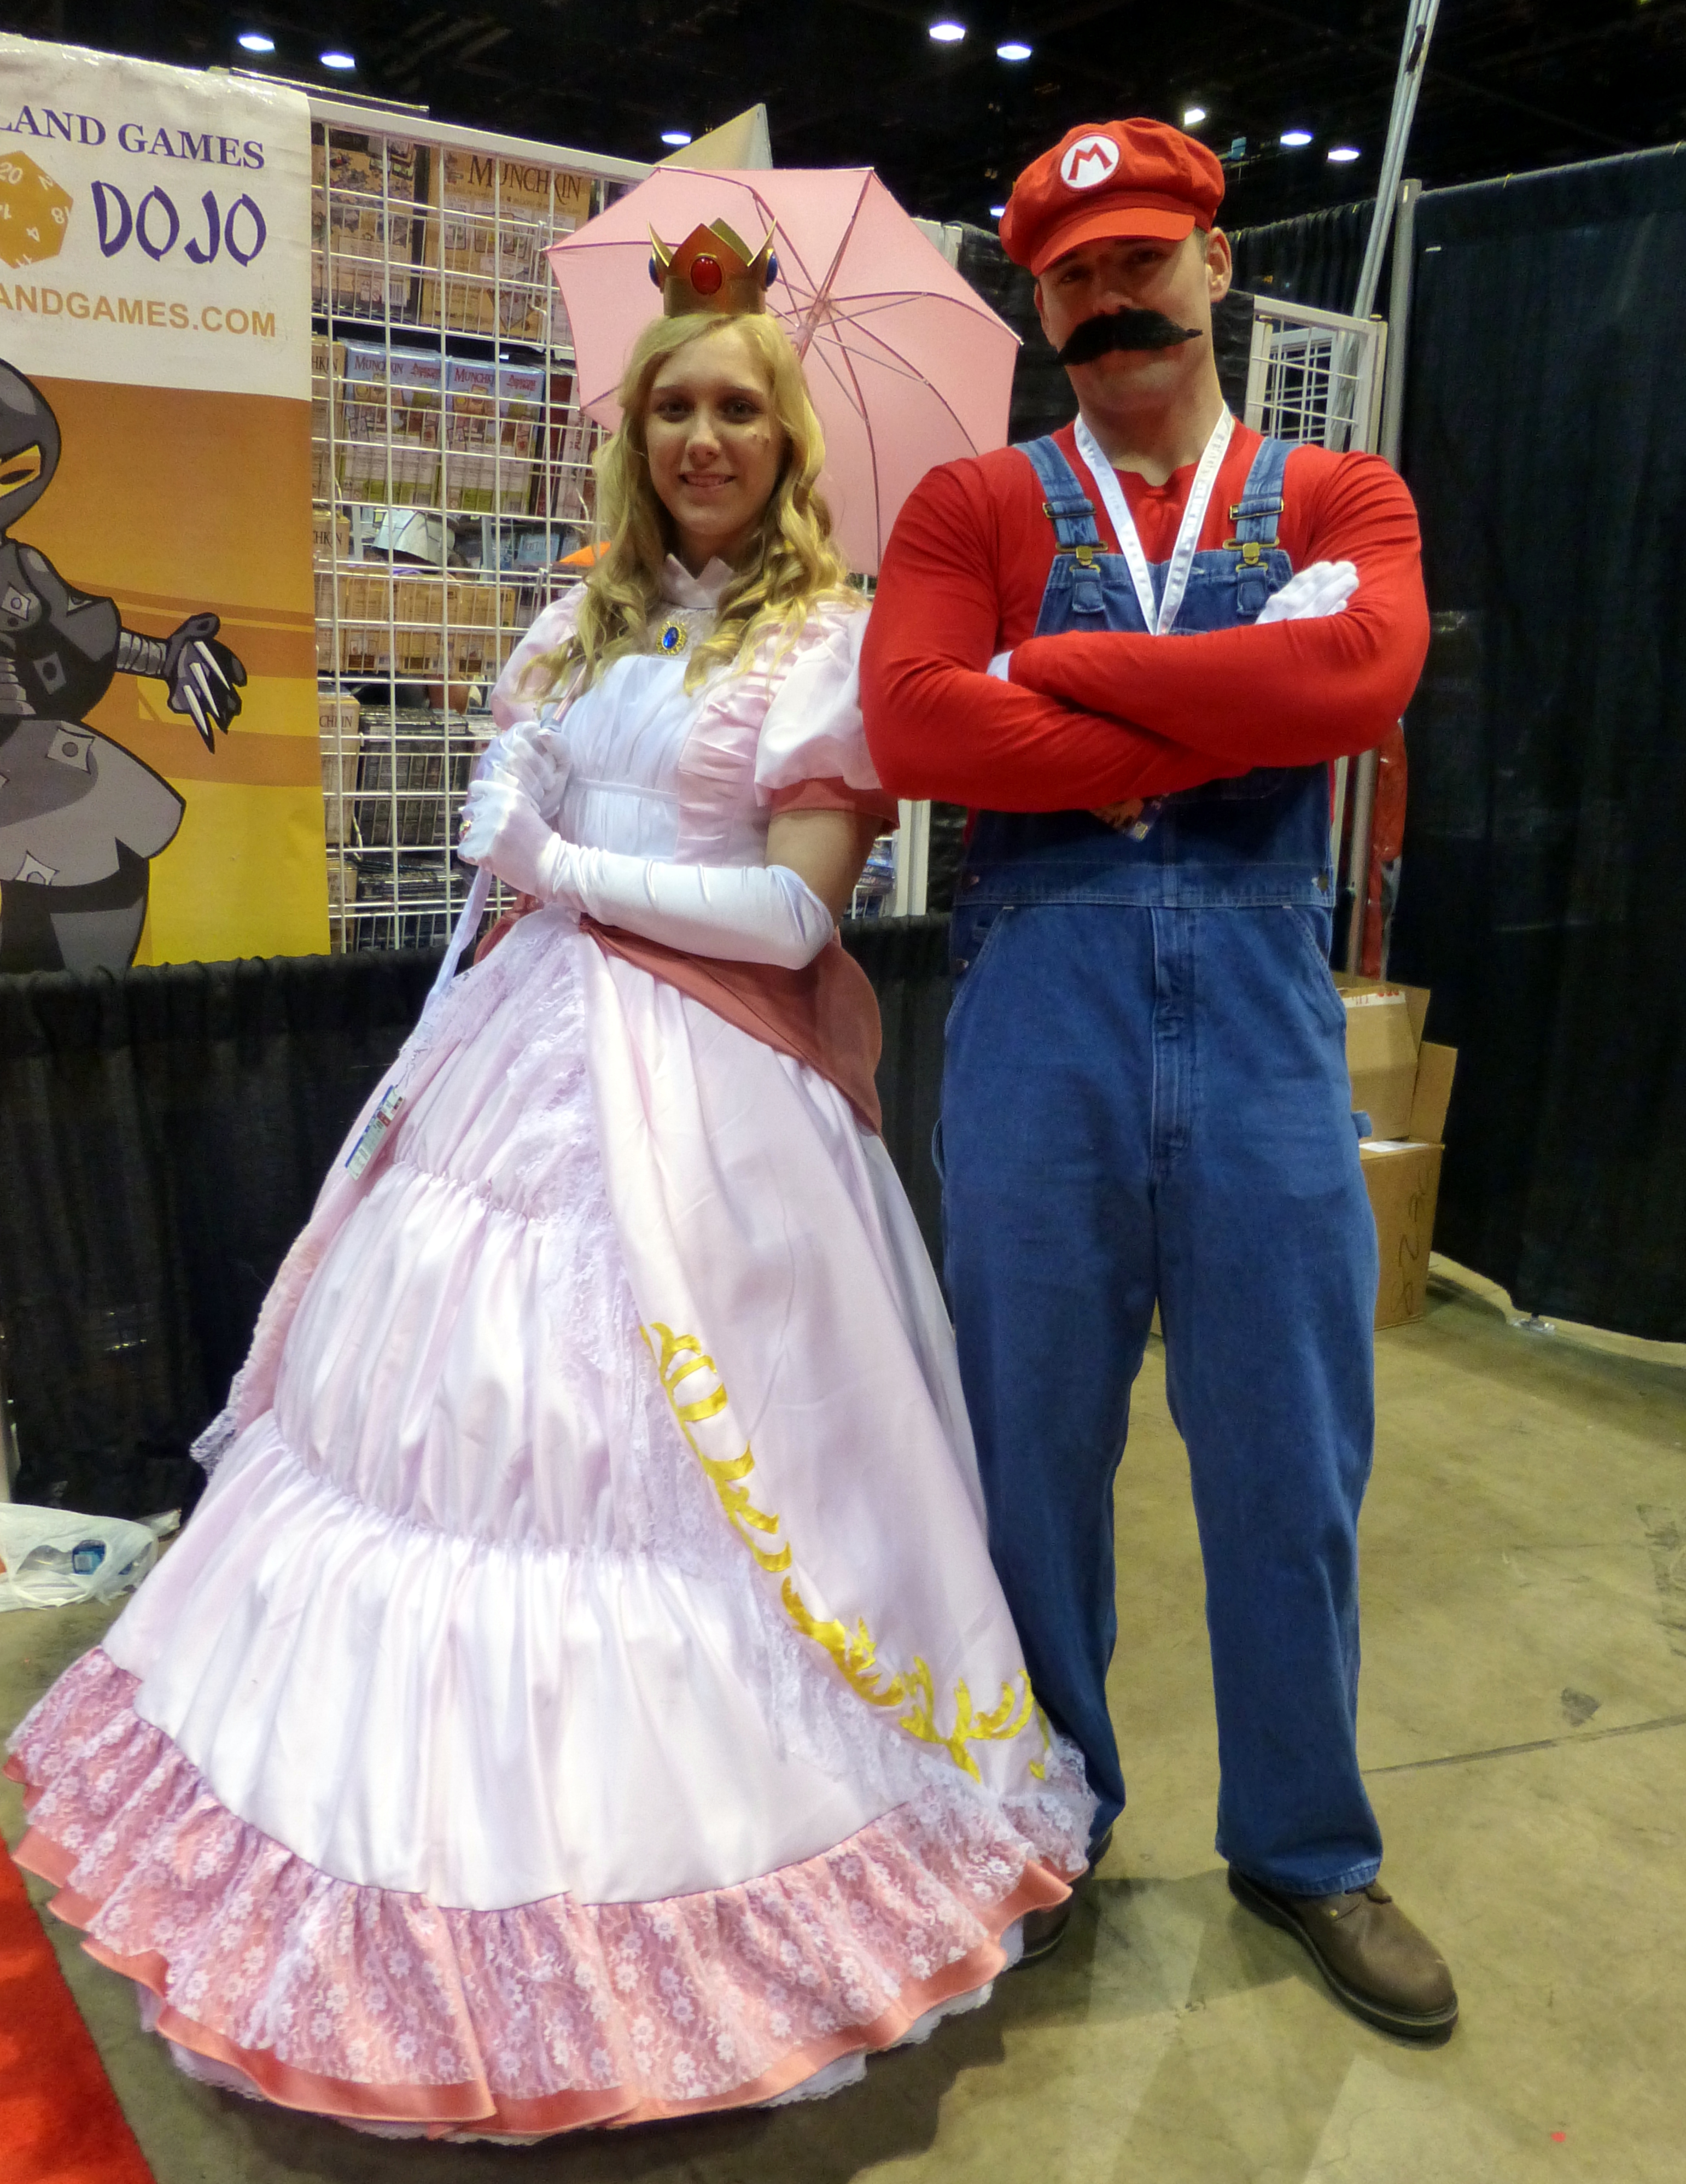 FileC2E2 2015 - Princess Peach u0026 Mario (16684275824).jpg  sc 1 st  Wikimedia Commons & File:C2E2 2015 - Princess Peach u0026 Mario (16684275824).jpg ...